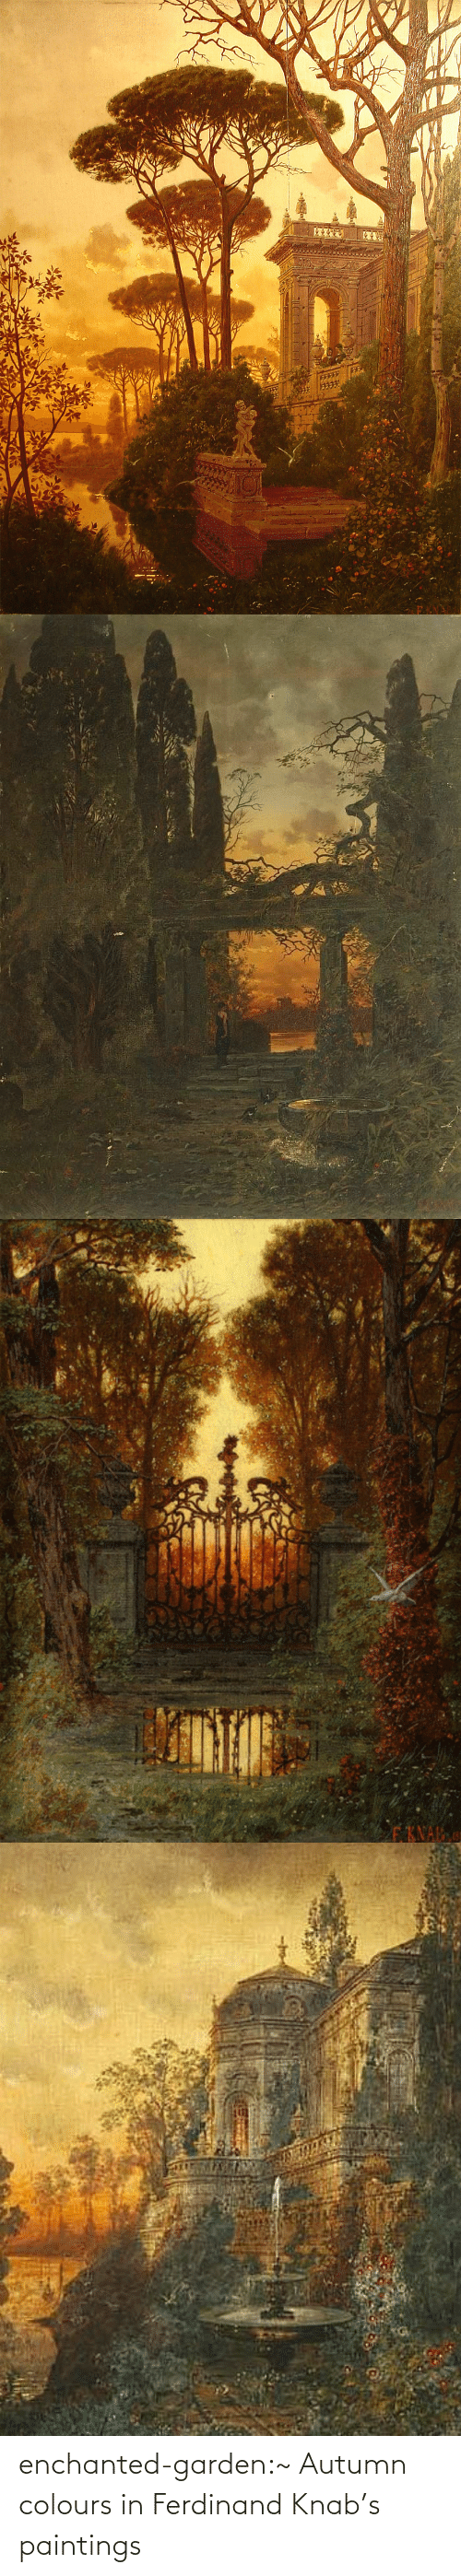 Paintings: enchanted-garden:~ Autumn colours in Ferdinand Knab's paintings